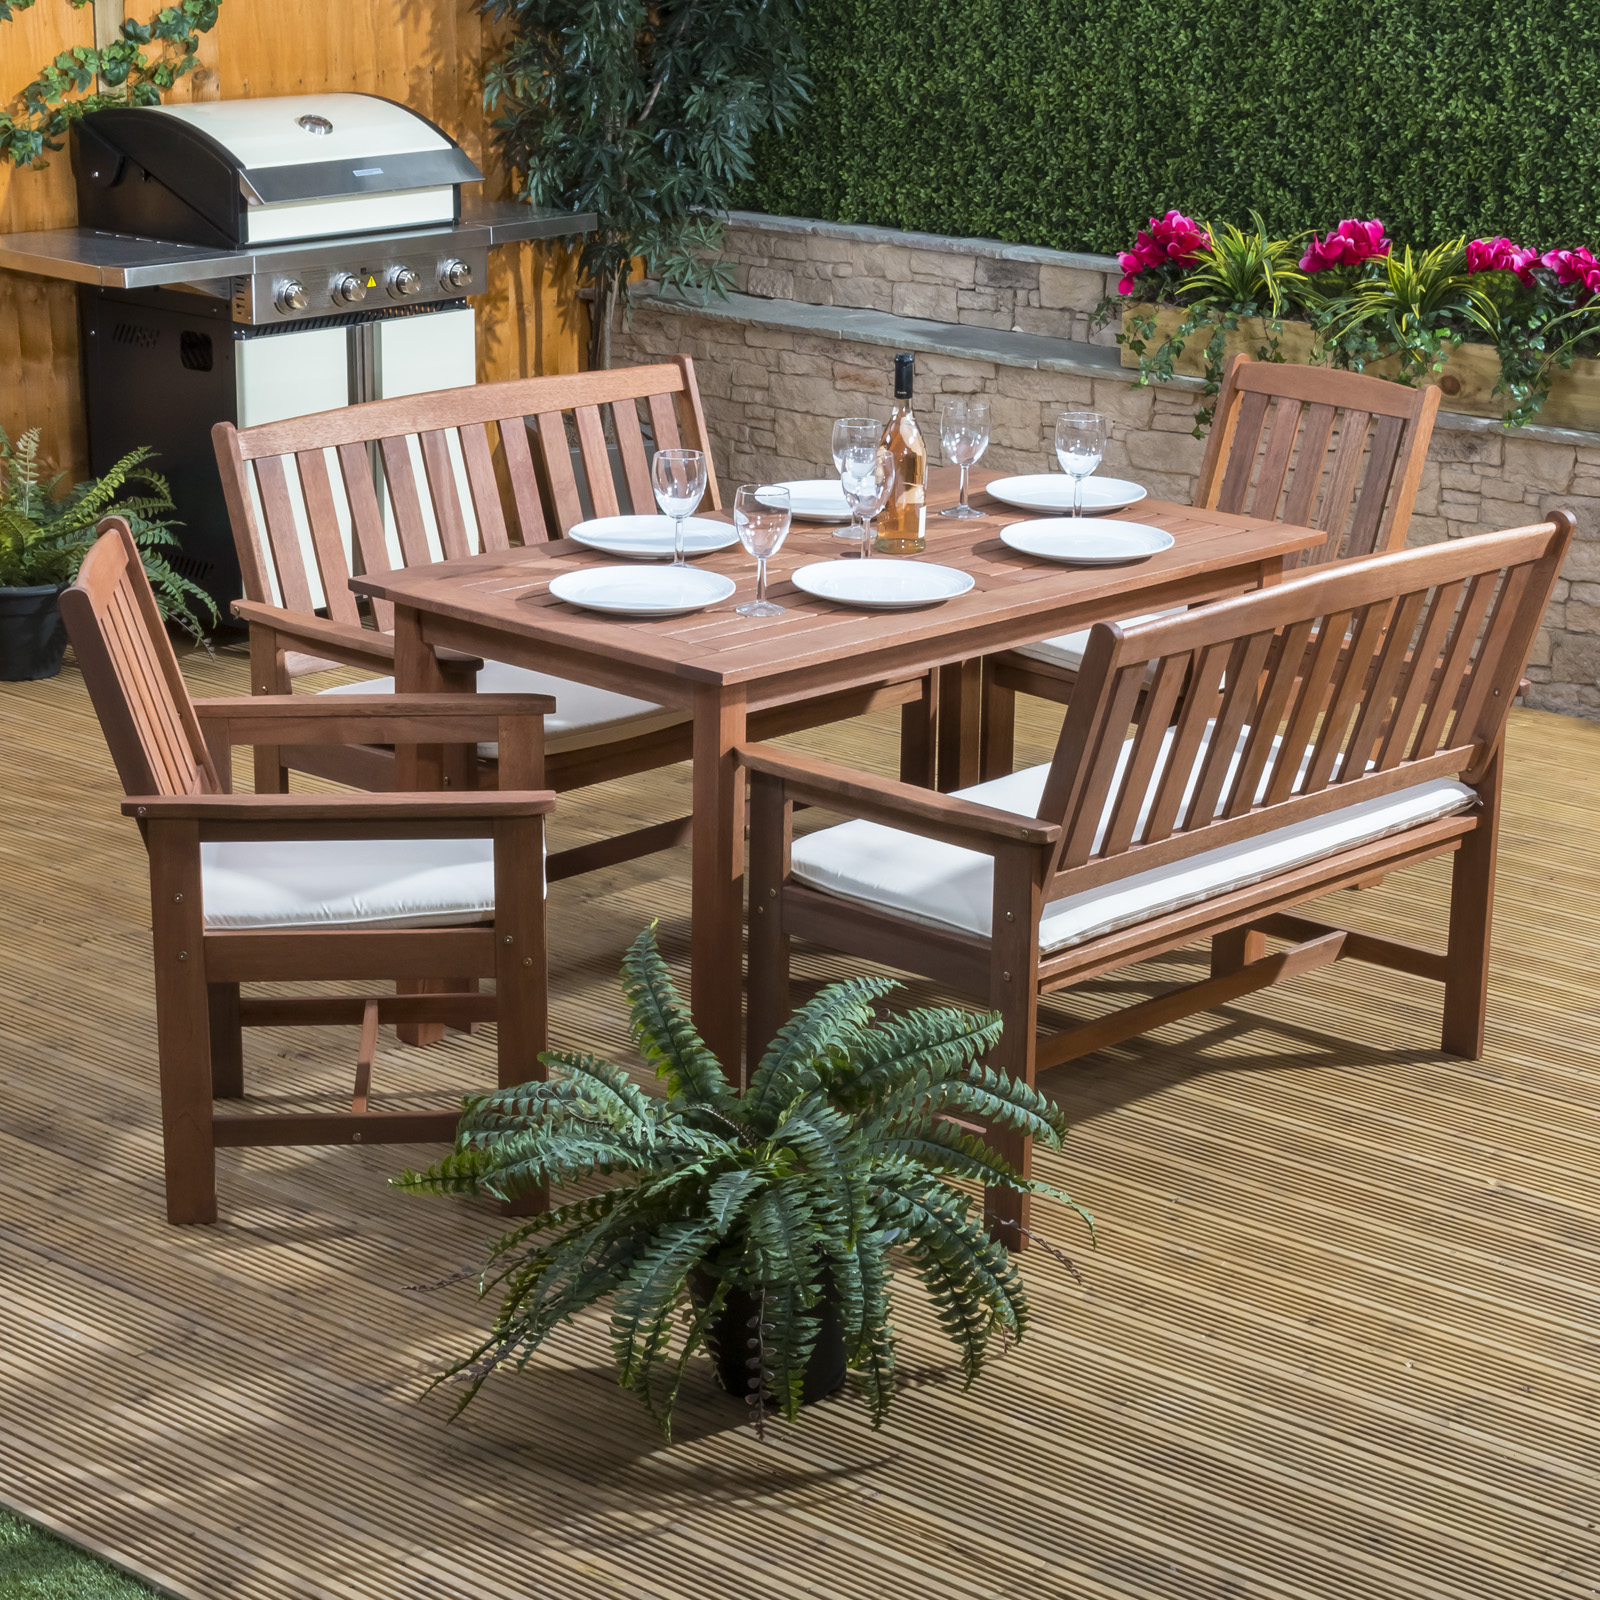 Alfresia Monaco Wooden Garden Furniture Set For 6 Ebay